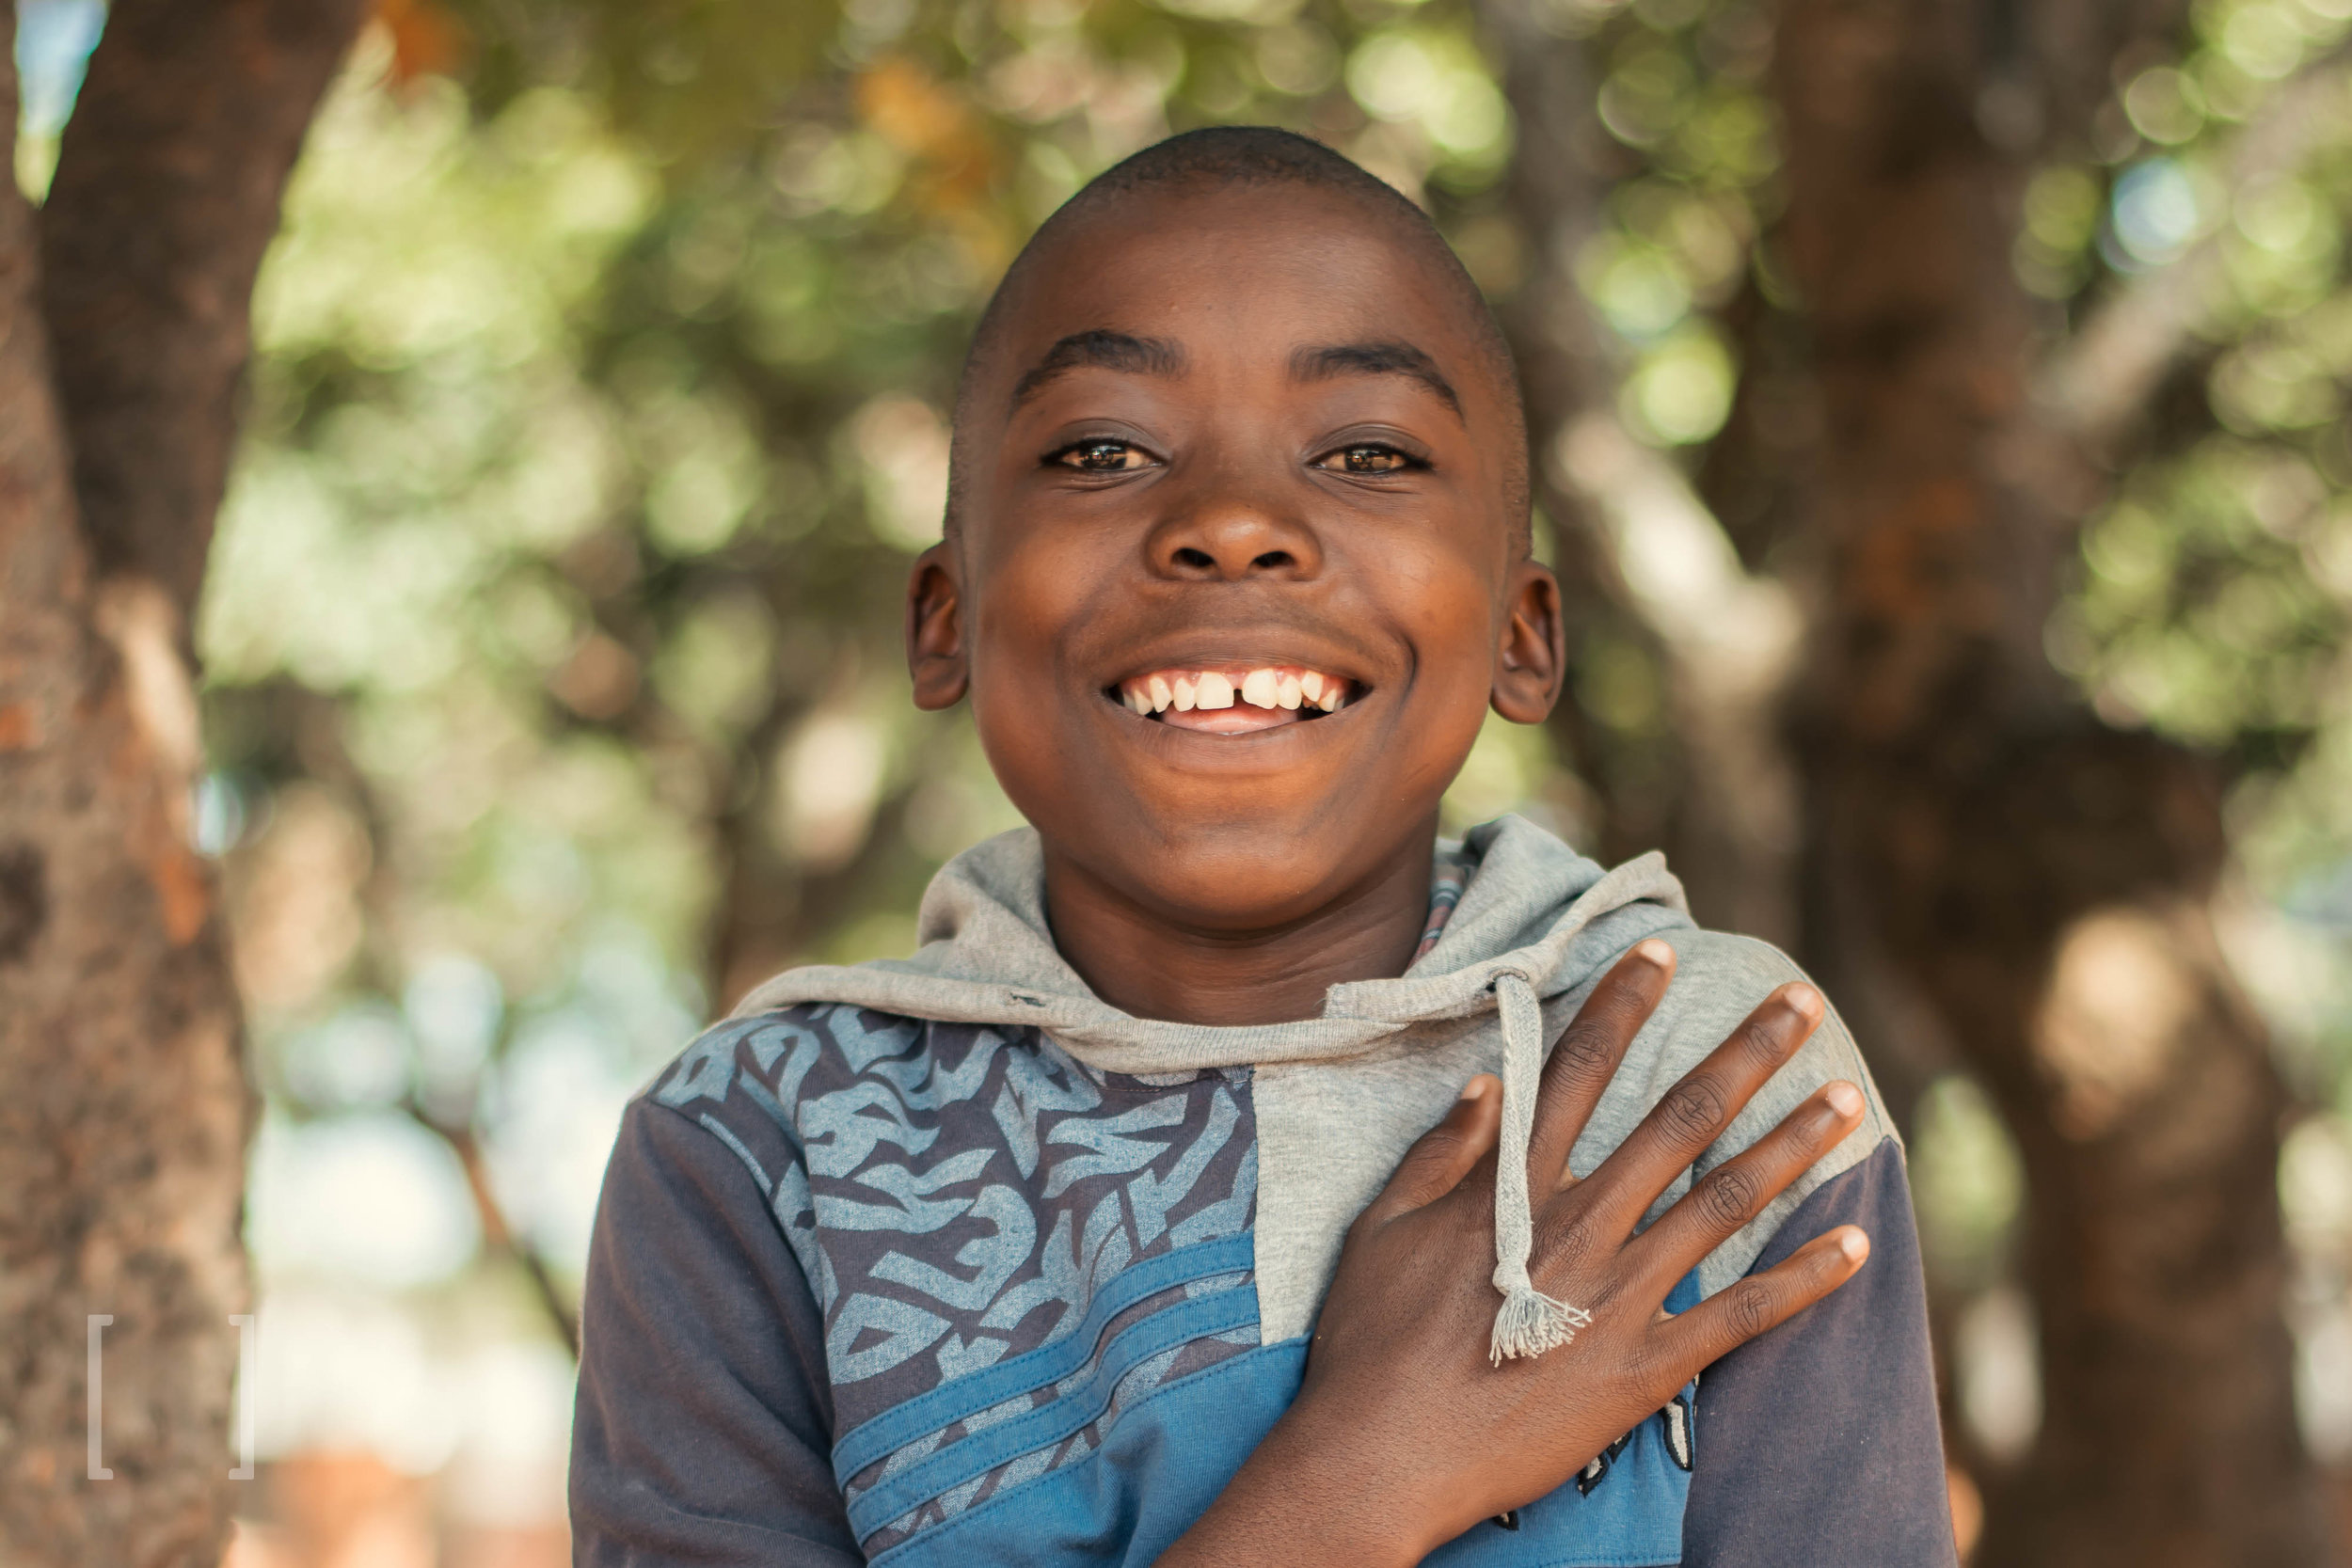 Hezekia - Hezekia came to the orphanage in 2005, when he was just one day old. Every Sunday he sings in the church choir. Hezekia likes playing with friends and wishes to become a doctor one day. Shower Hezekia with some affection and become his sponsor!